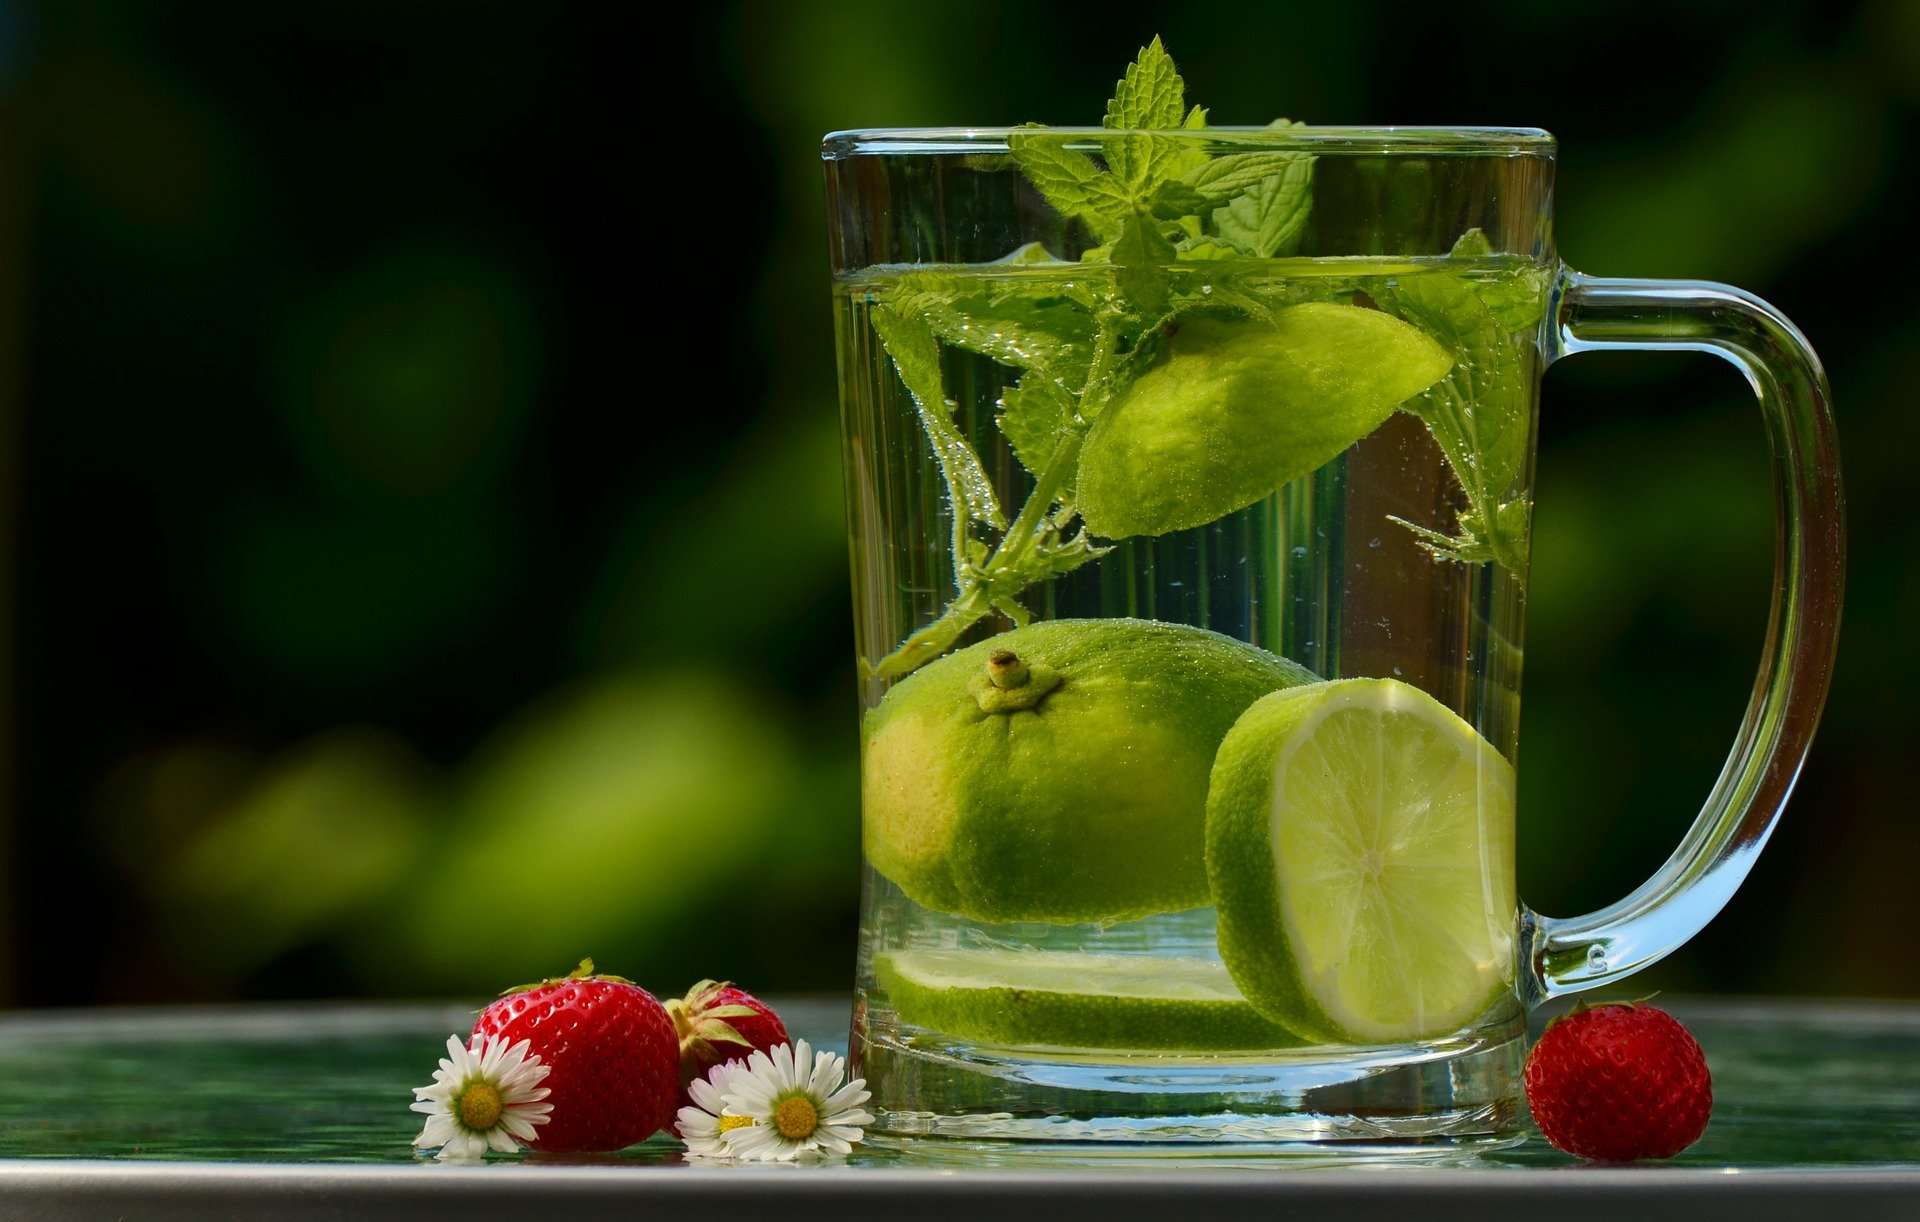 5 Simple Ways to Detoxify Your Body At Home